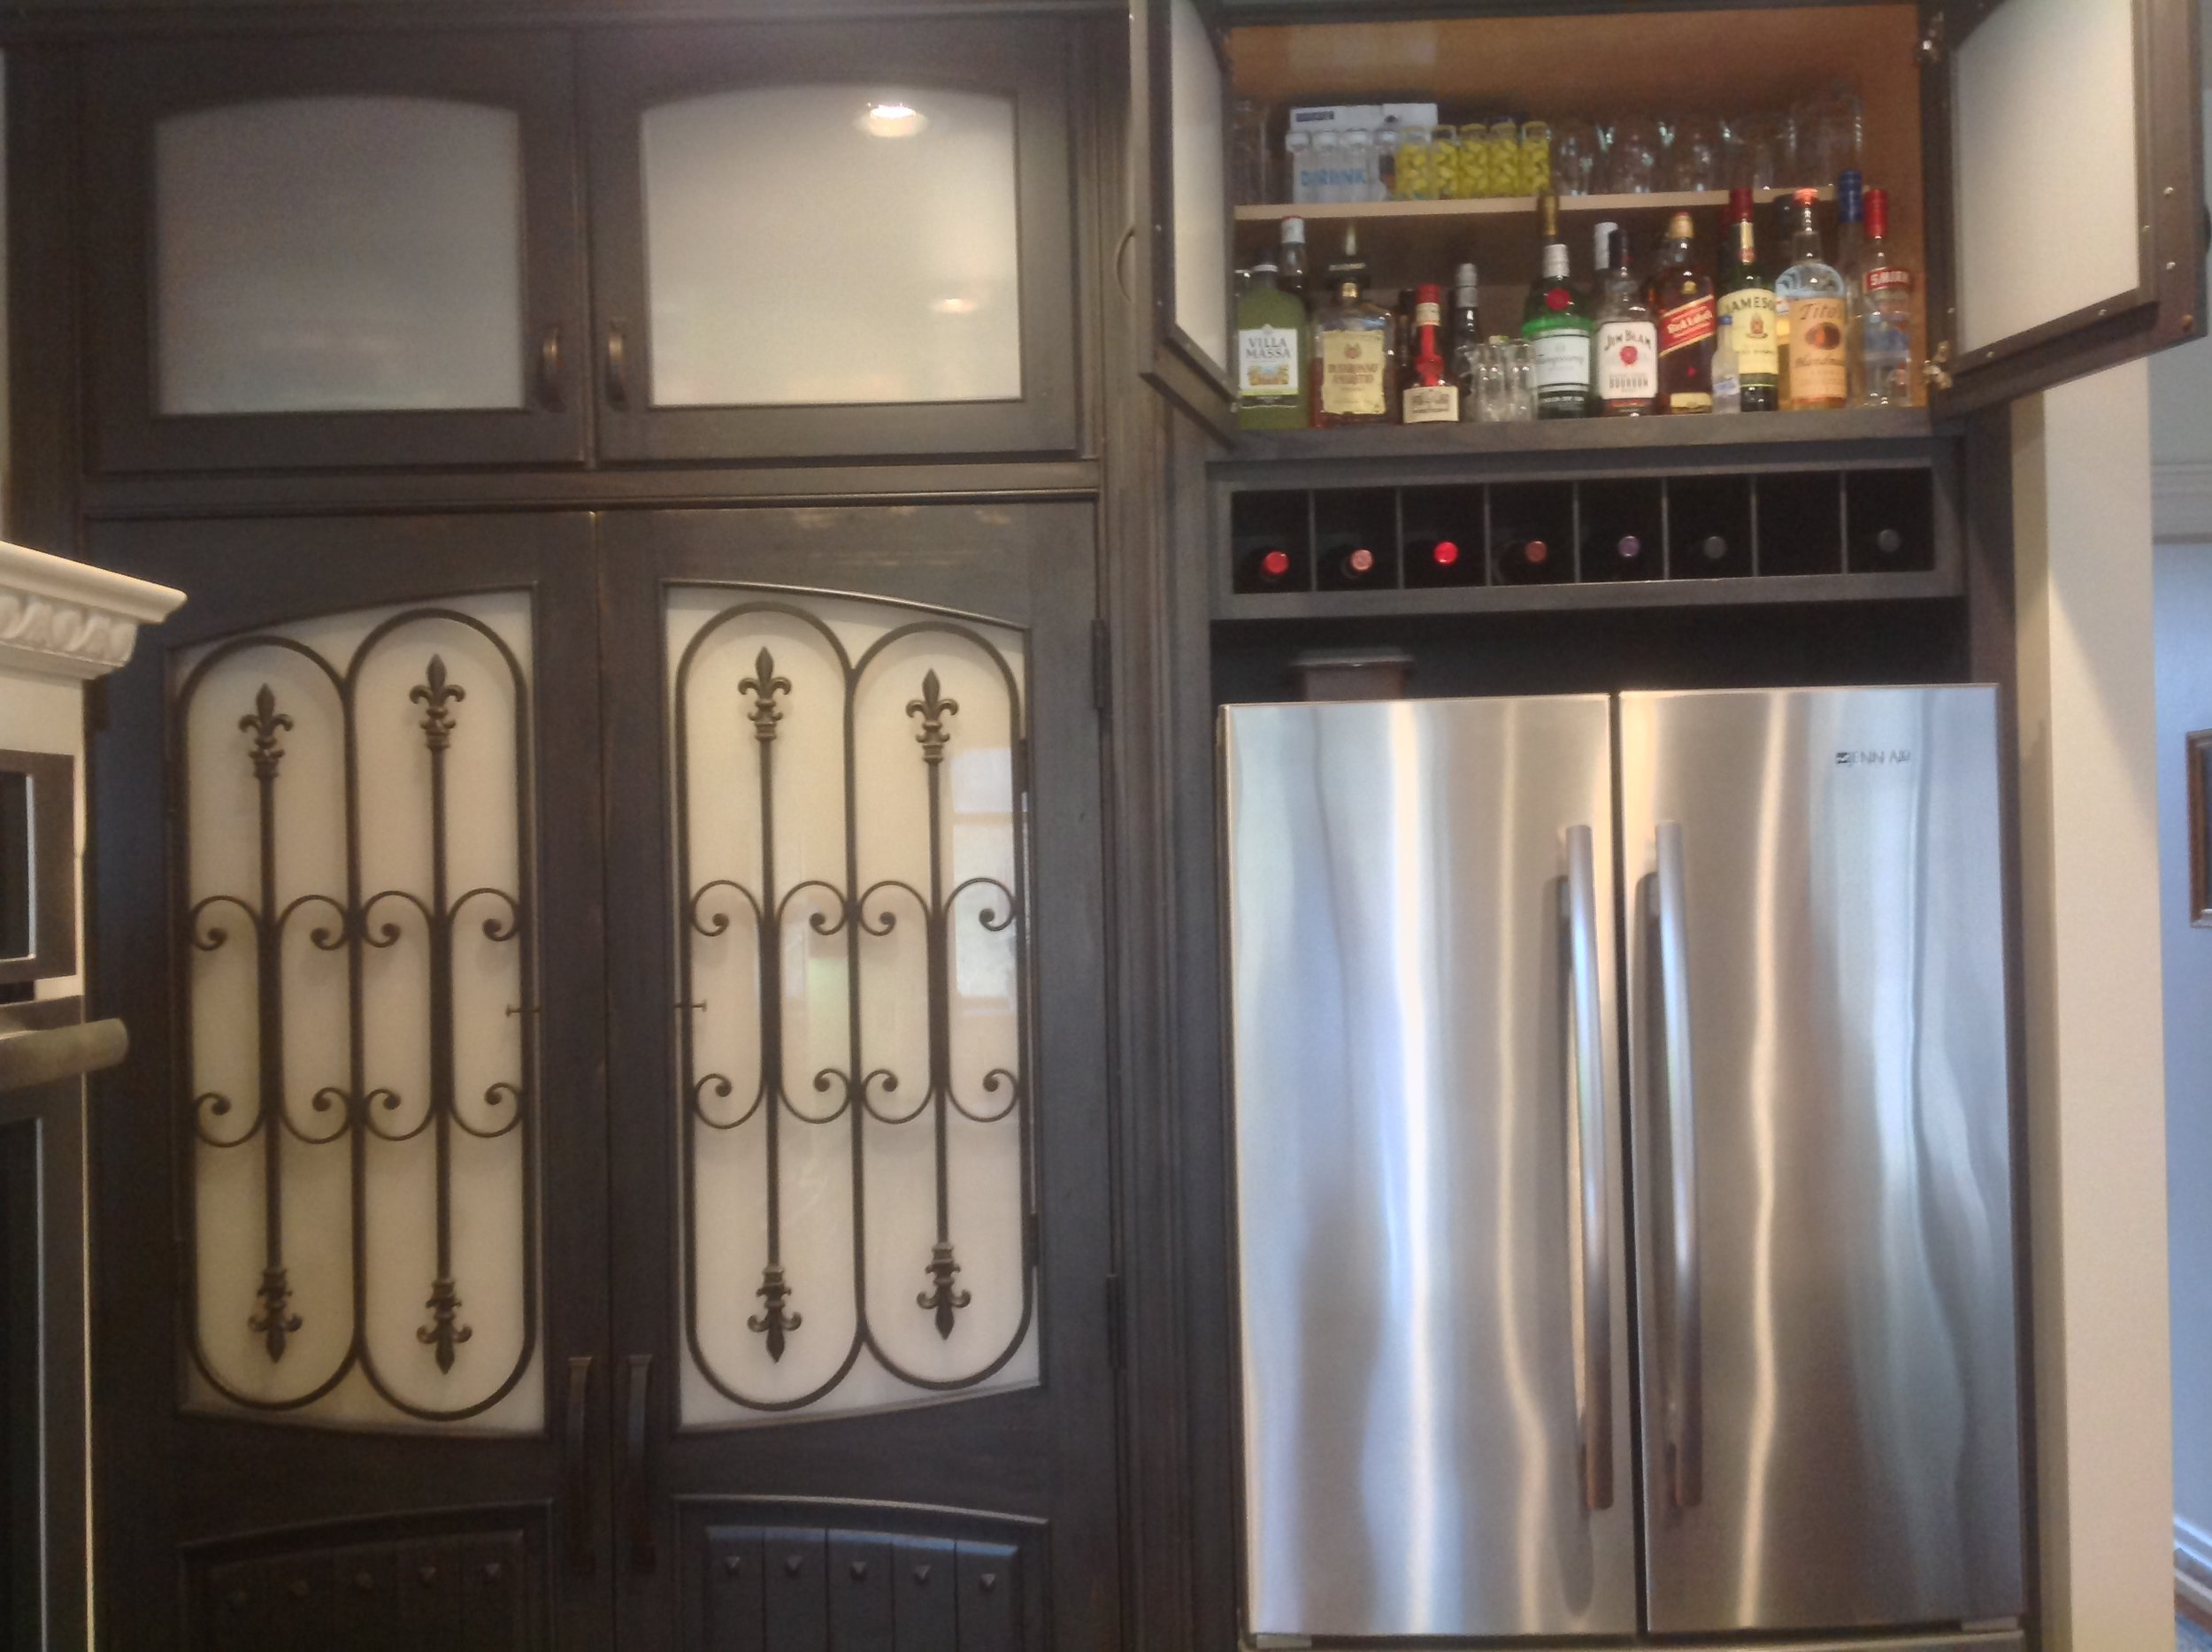 custom made bar and wine rack above refrigerator